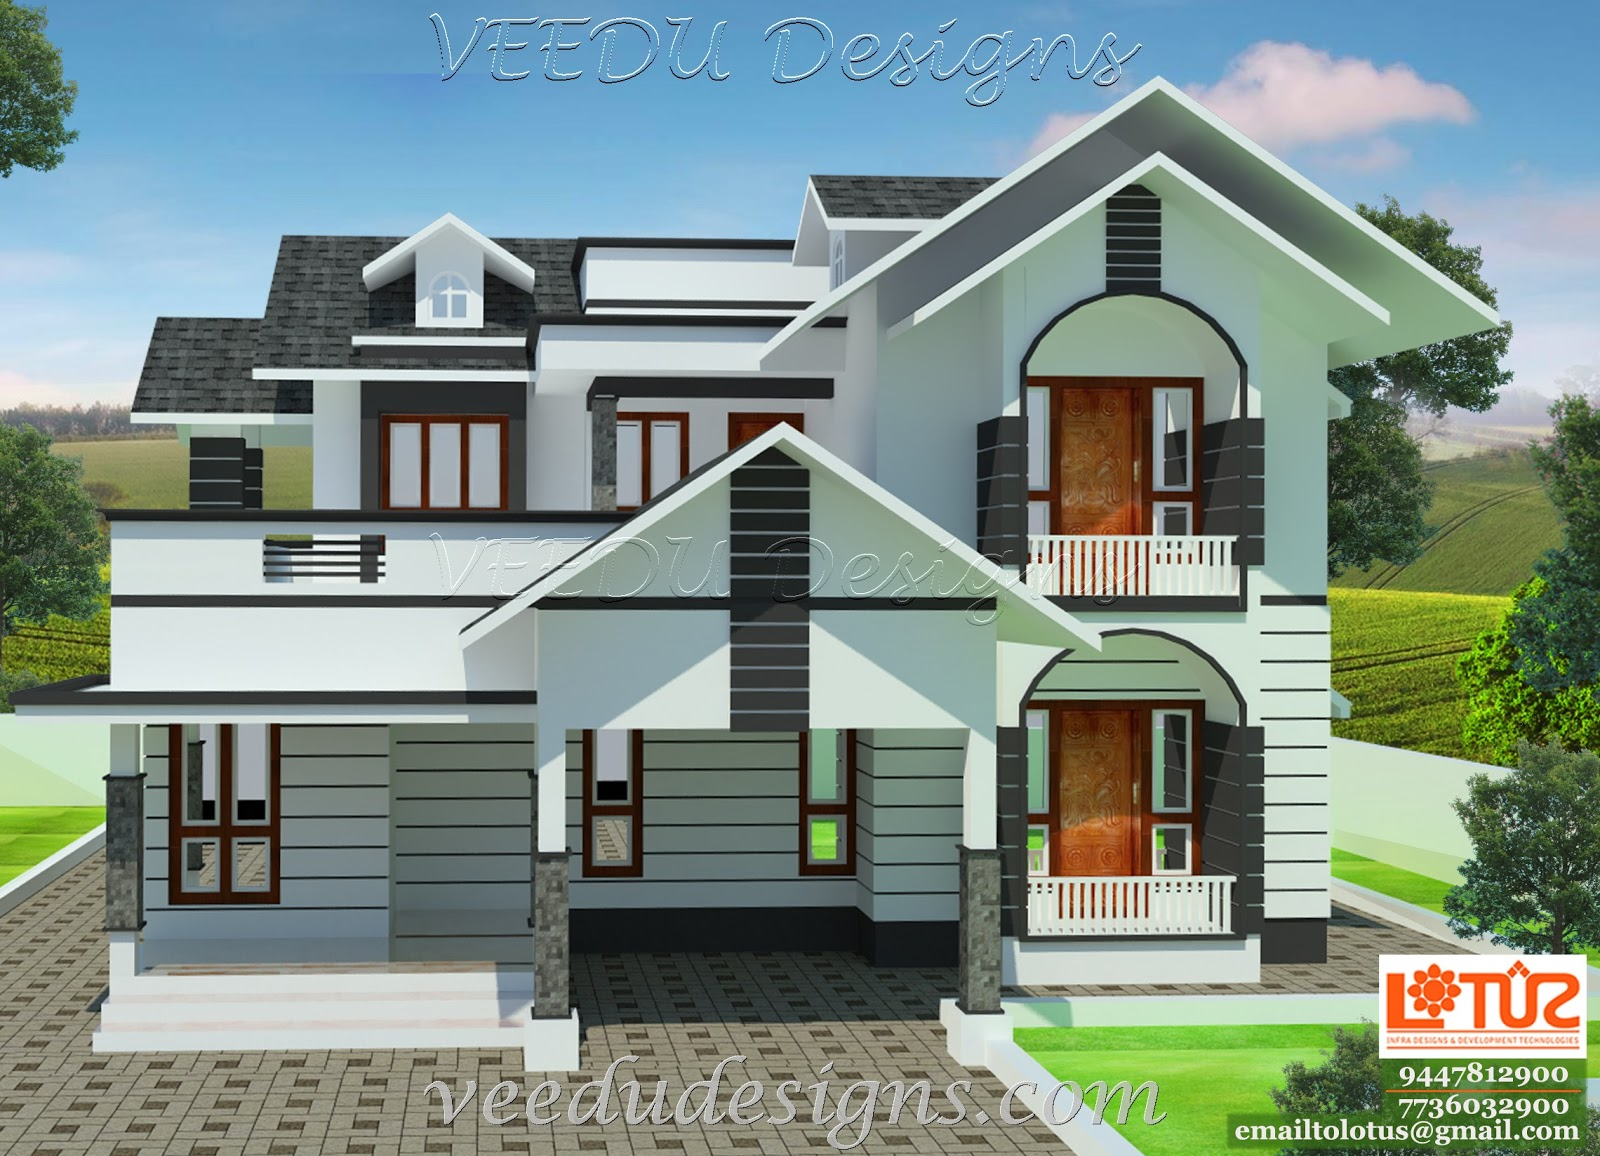 Veedu designs july 2015 for Design from home